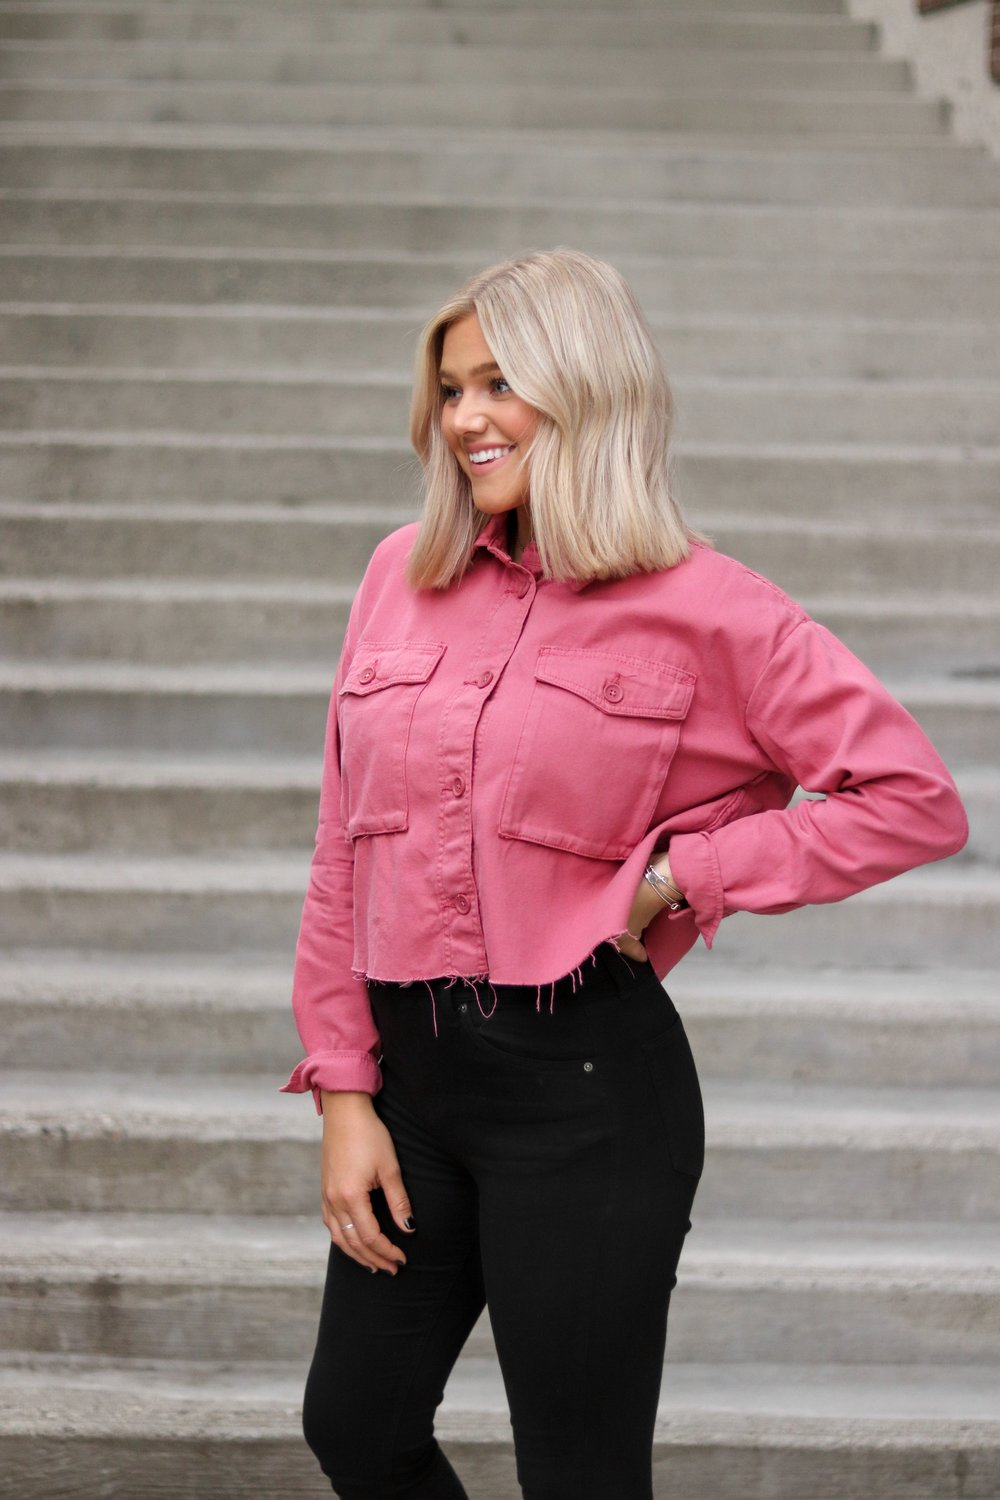 Casual Cool Under $75 With Nordstrom - Bre Sheppard 2.JPG